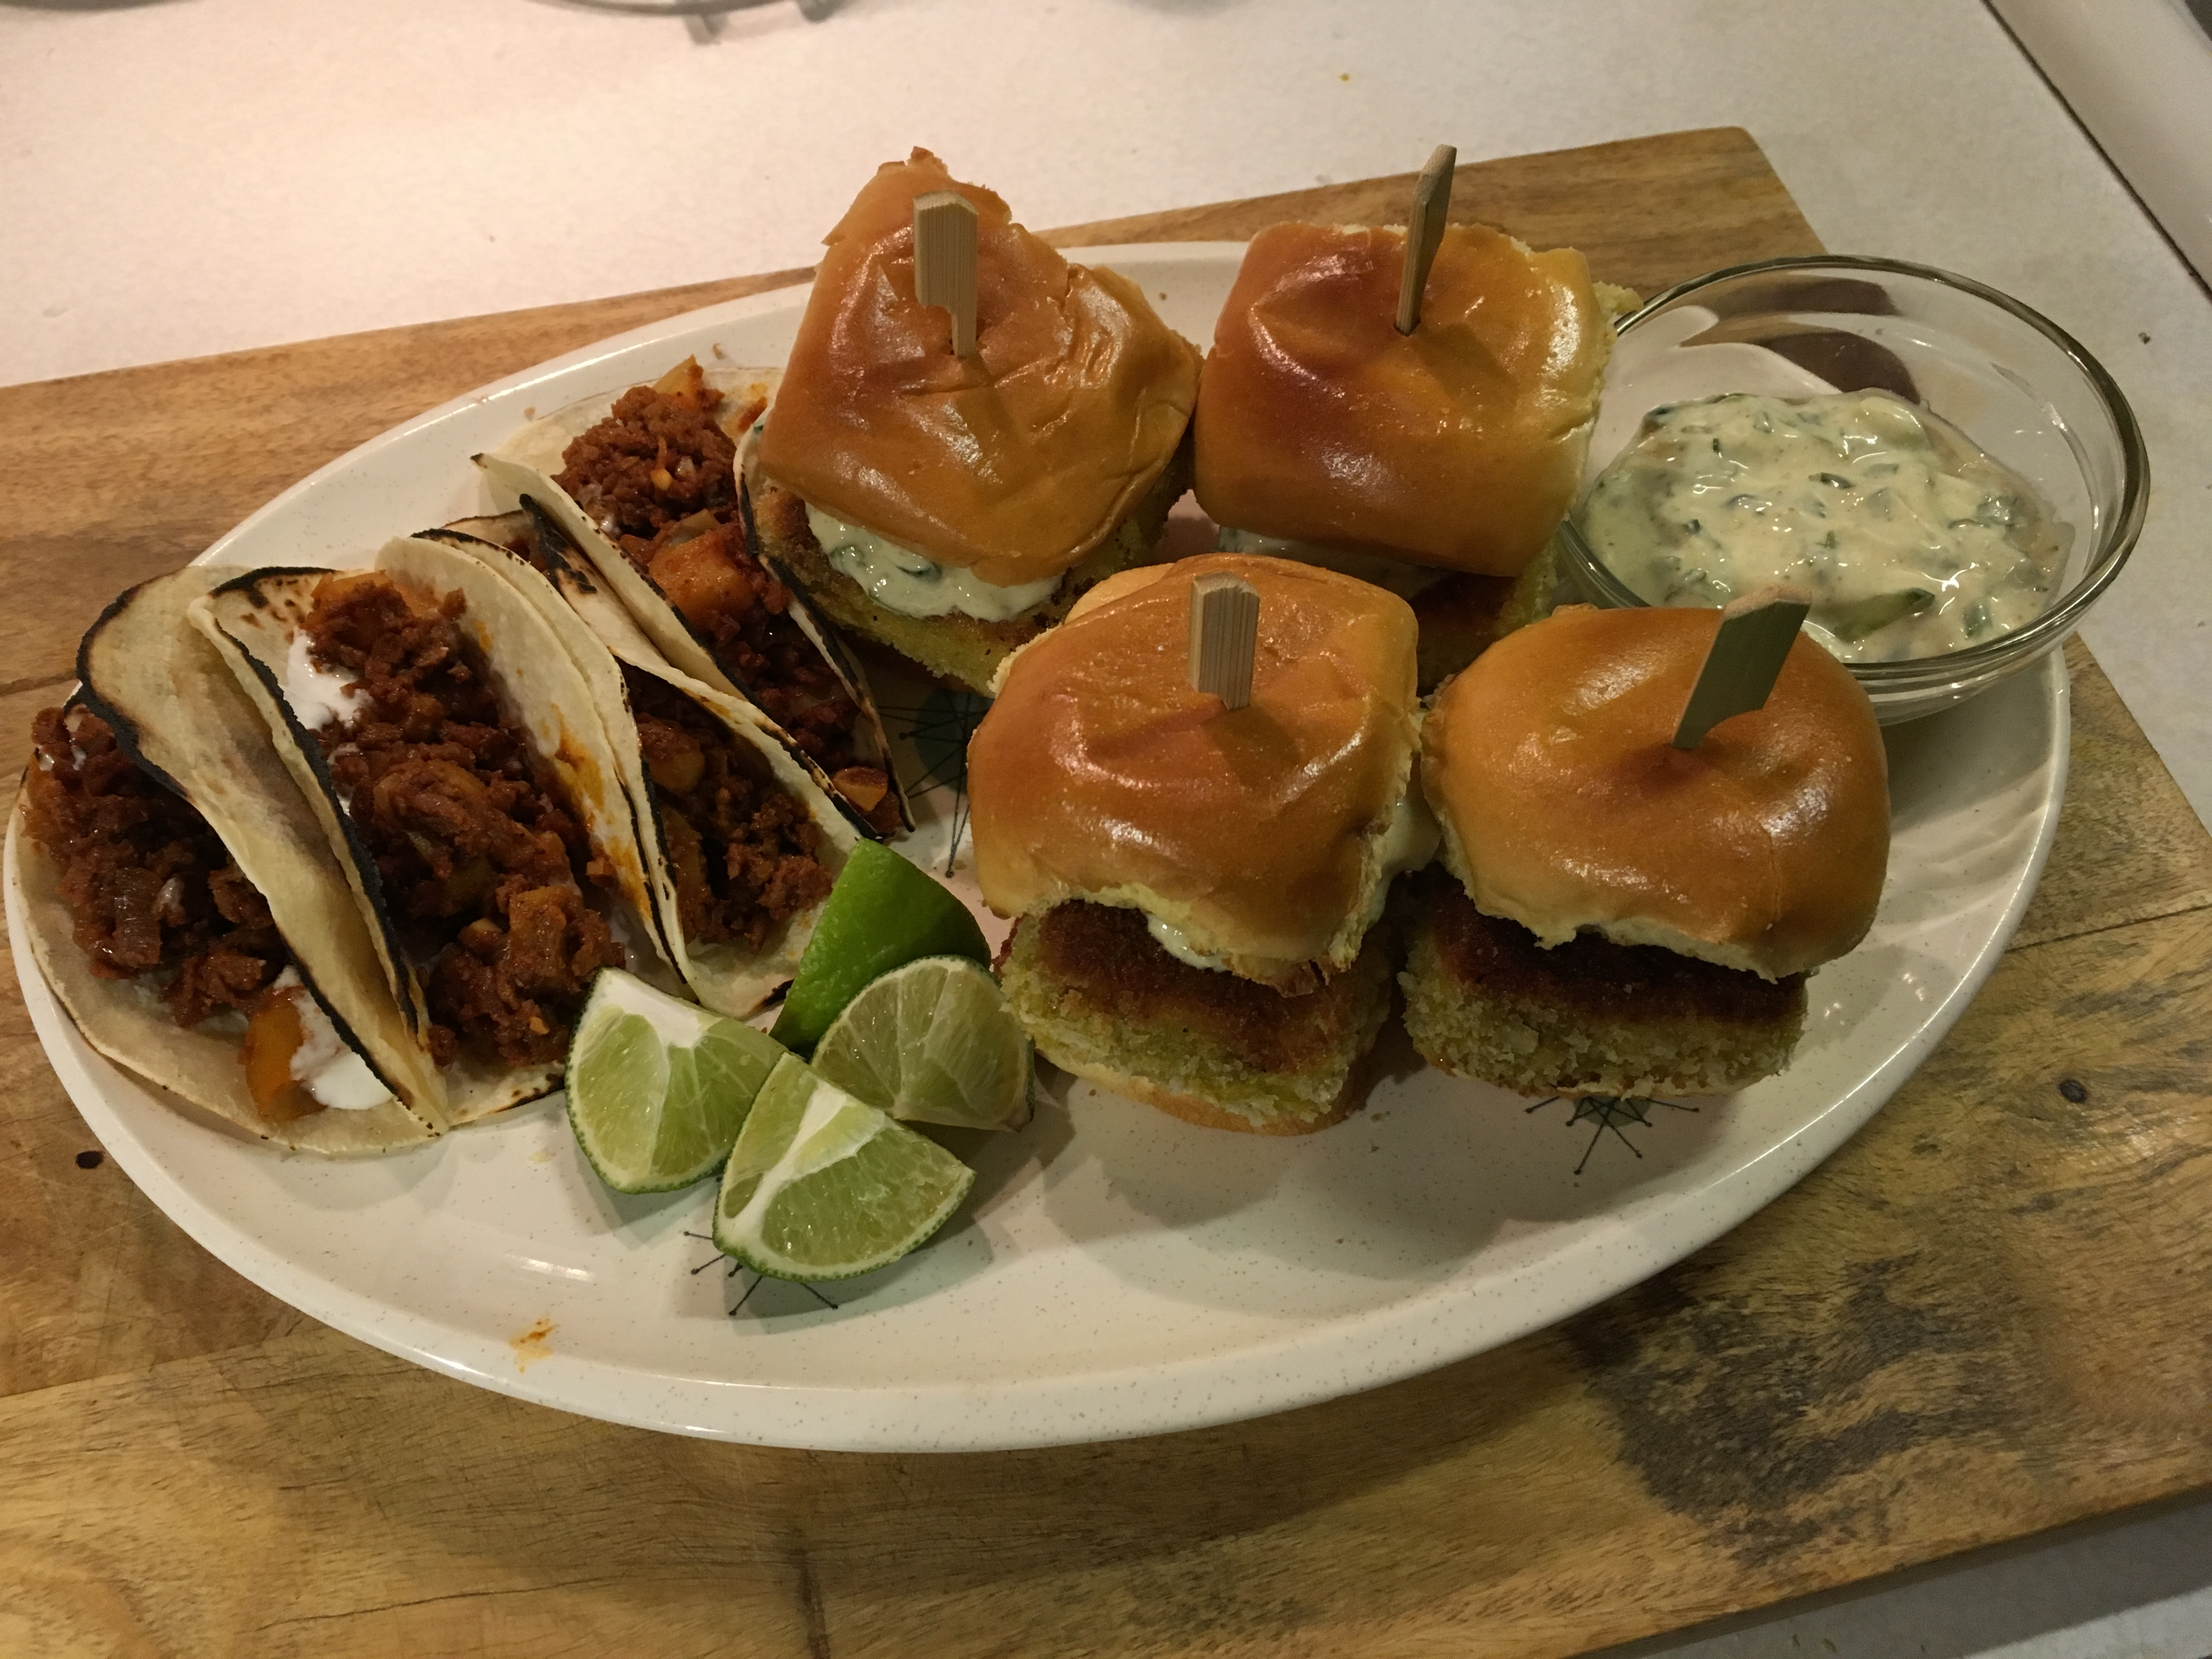 Vegetarian tacos and sliders